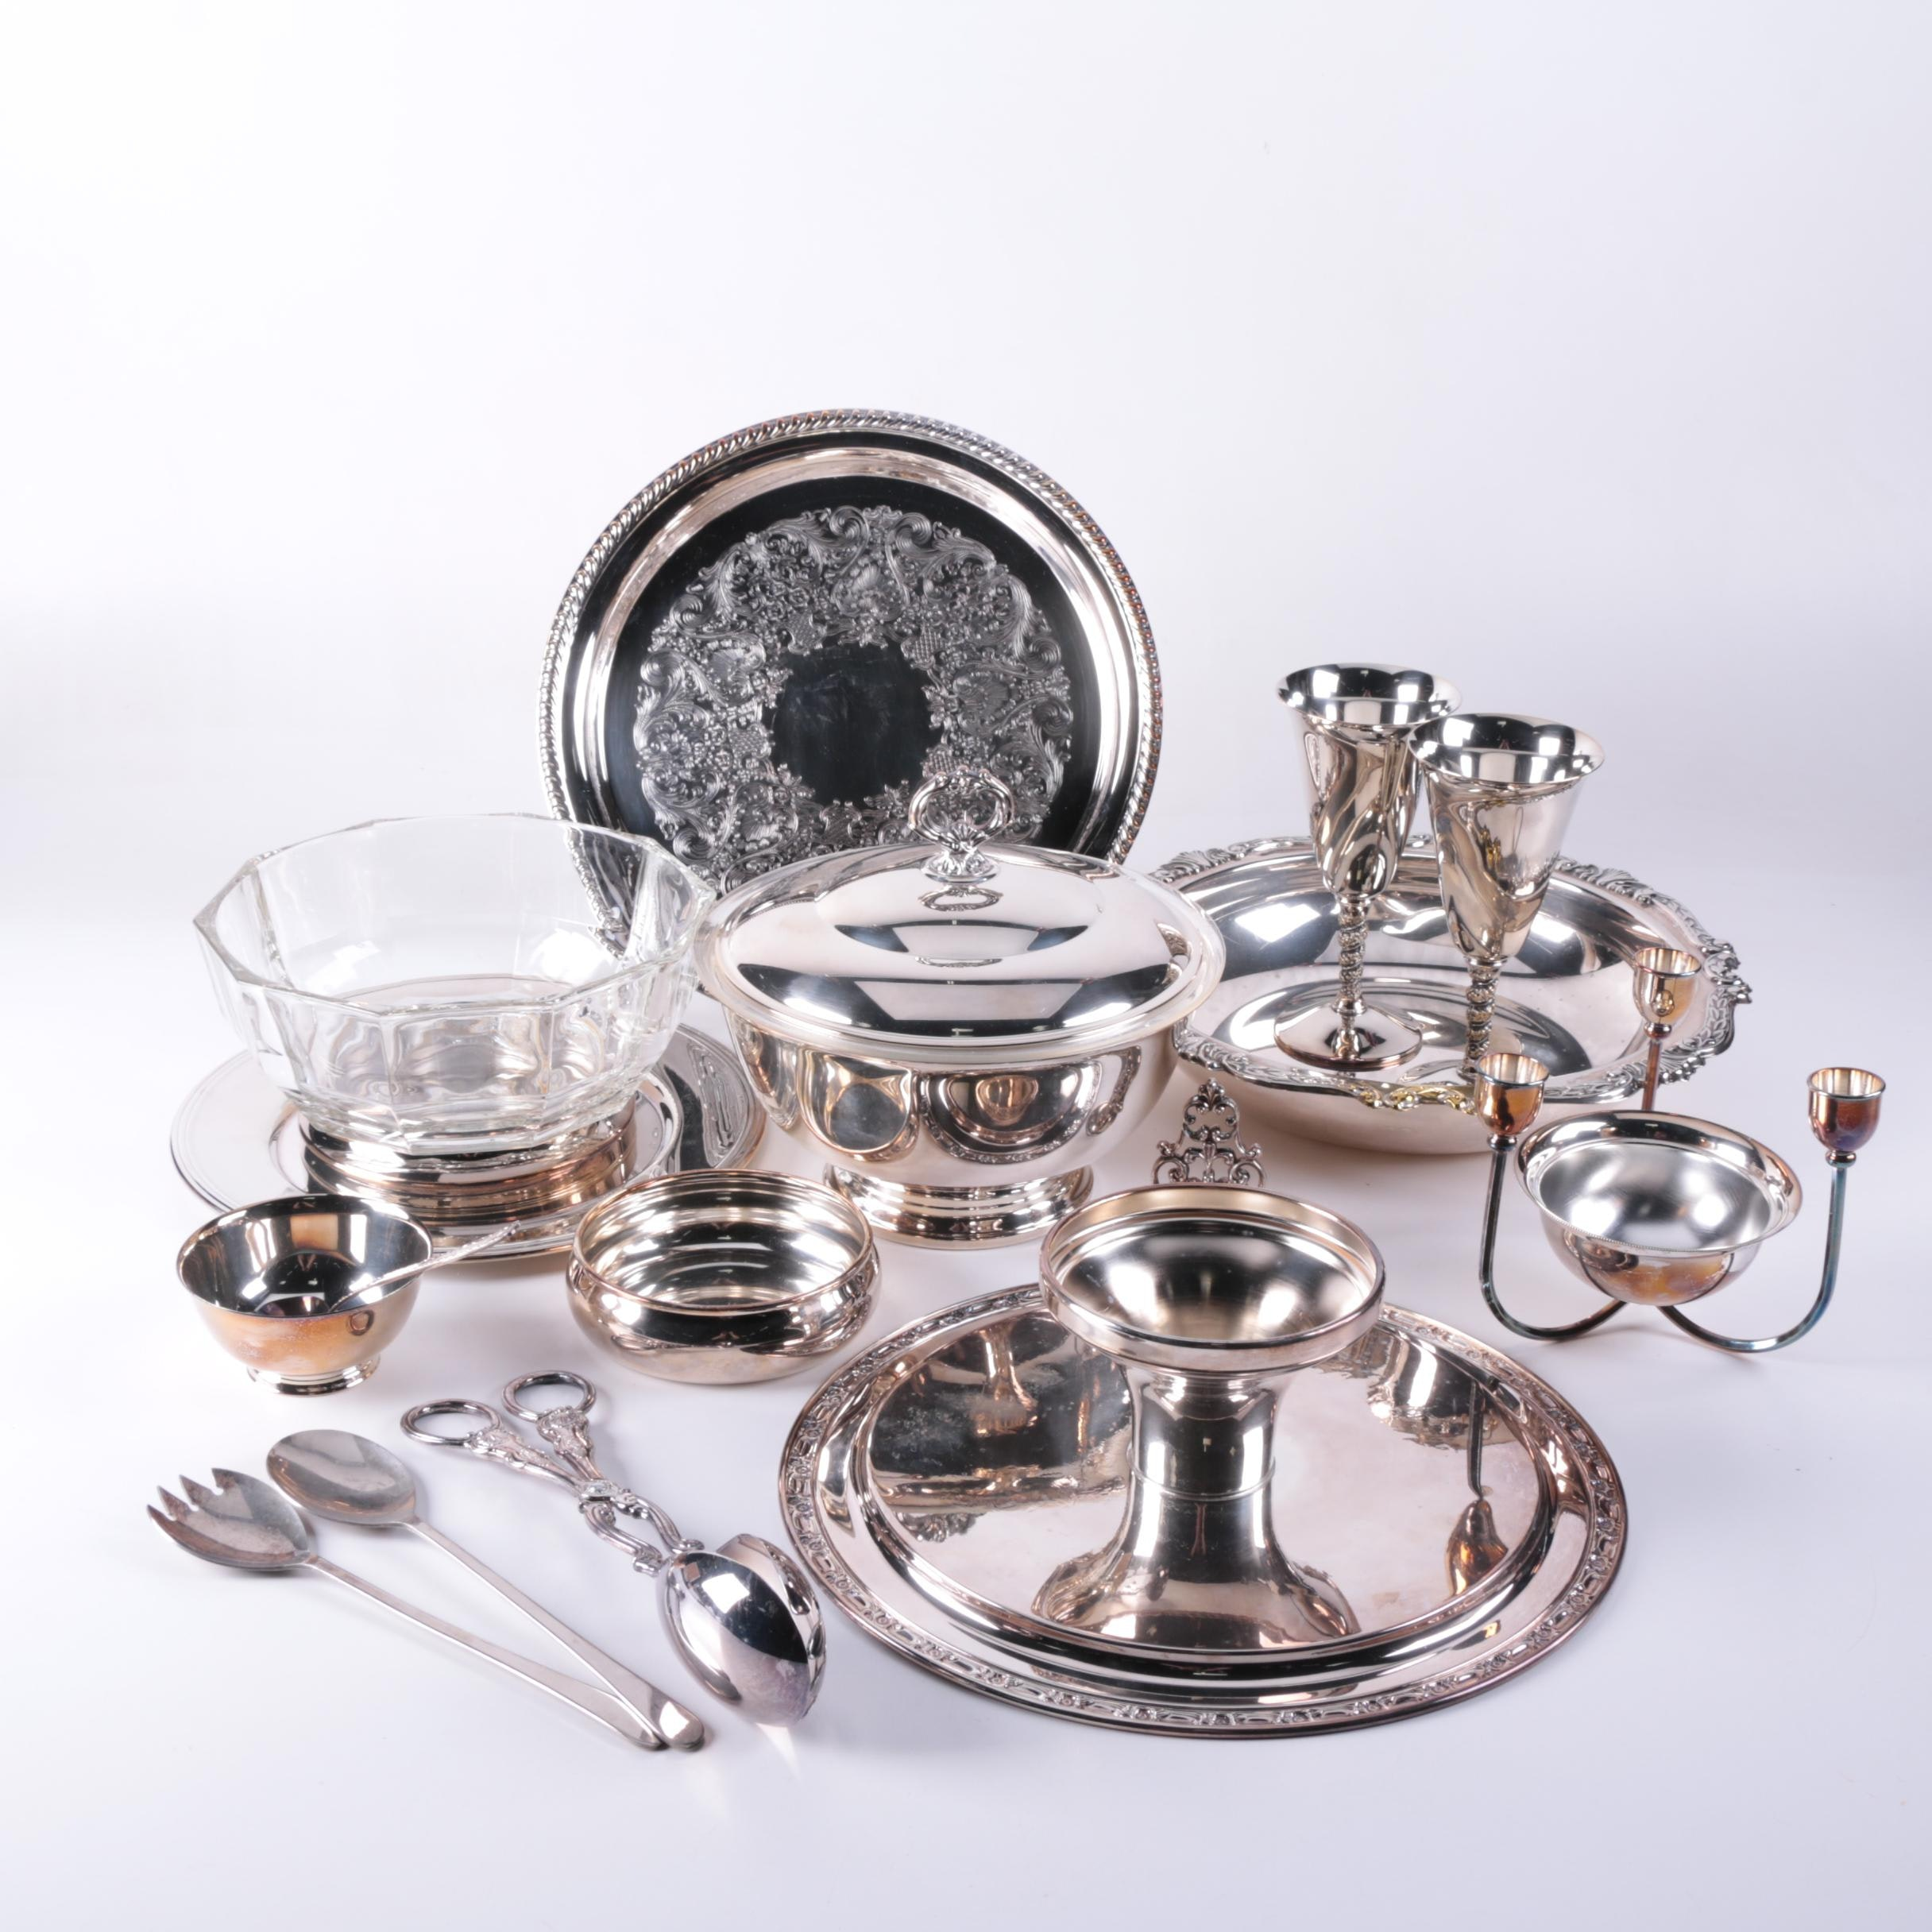 FB Rogers Silver Plate Goblets and Assorted Silver Plate Serveware